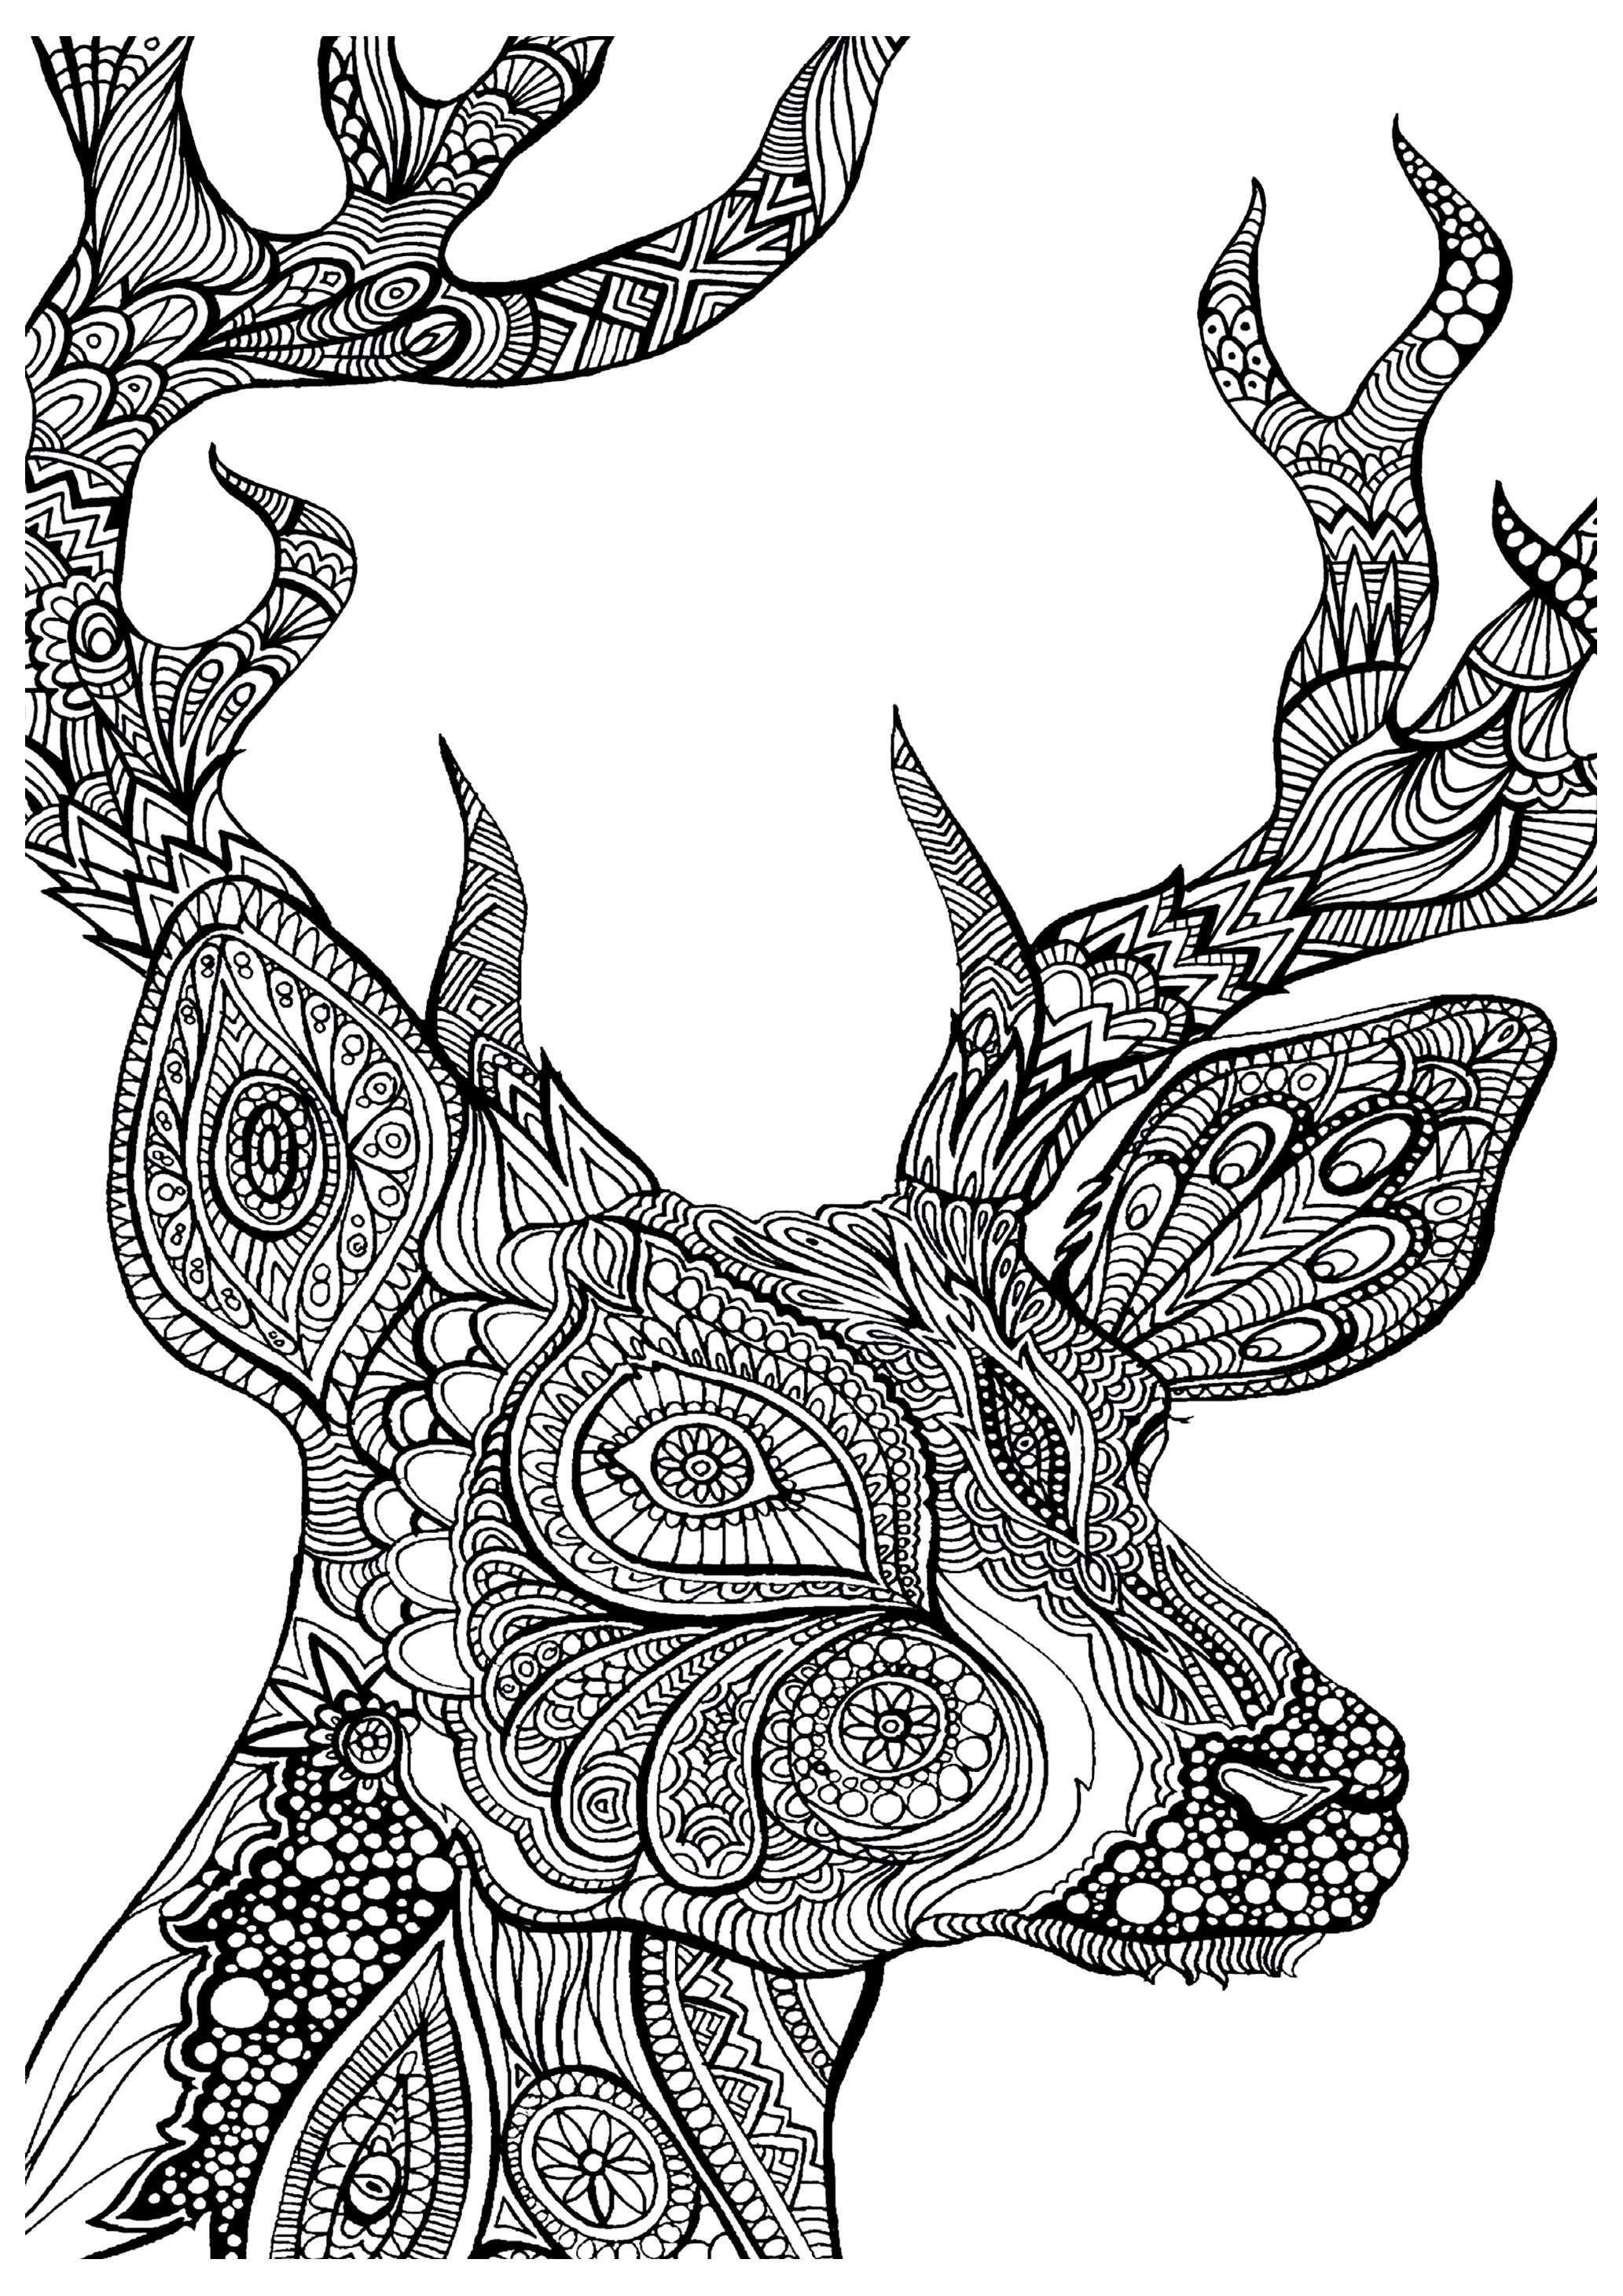 Printable Free Coloring Pages For Adults  19 of the Best Adult Colouring Pages Free Printables for